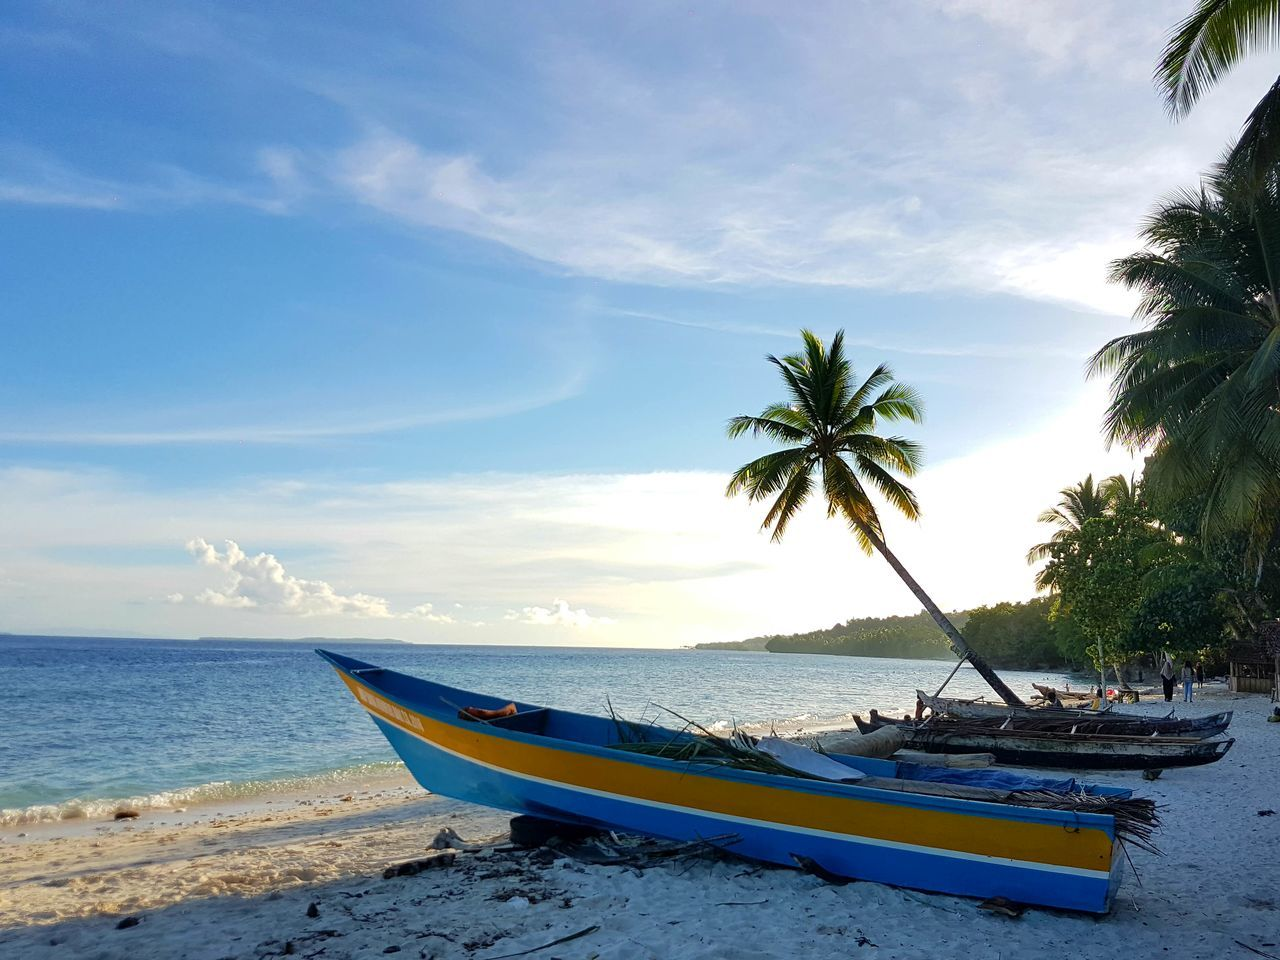 Beach Sea Boat Coconut Tree Water Nautical Vessel Transportation Sand Sky Horizon Over Water Shore Tranquil Scene Scenics Tropical Climate Nature Anggopi Beach Biak Papua Indonesia